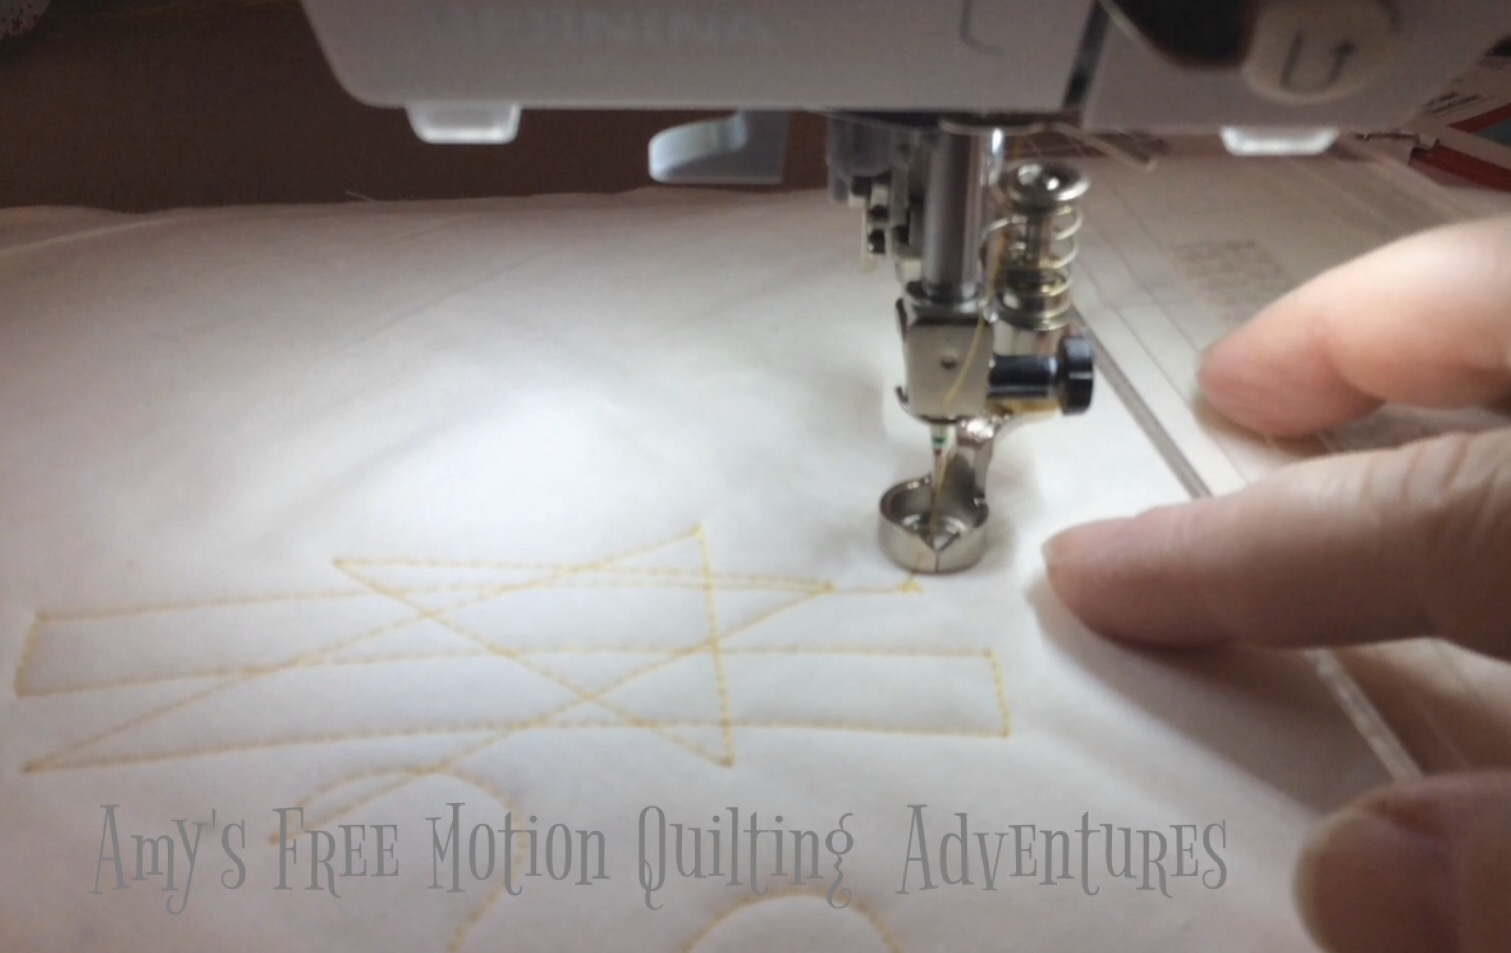 Amy's Free Motion Quilting Adventures: January 2017